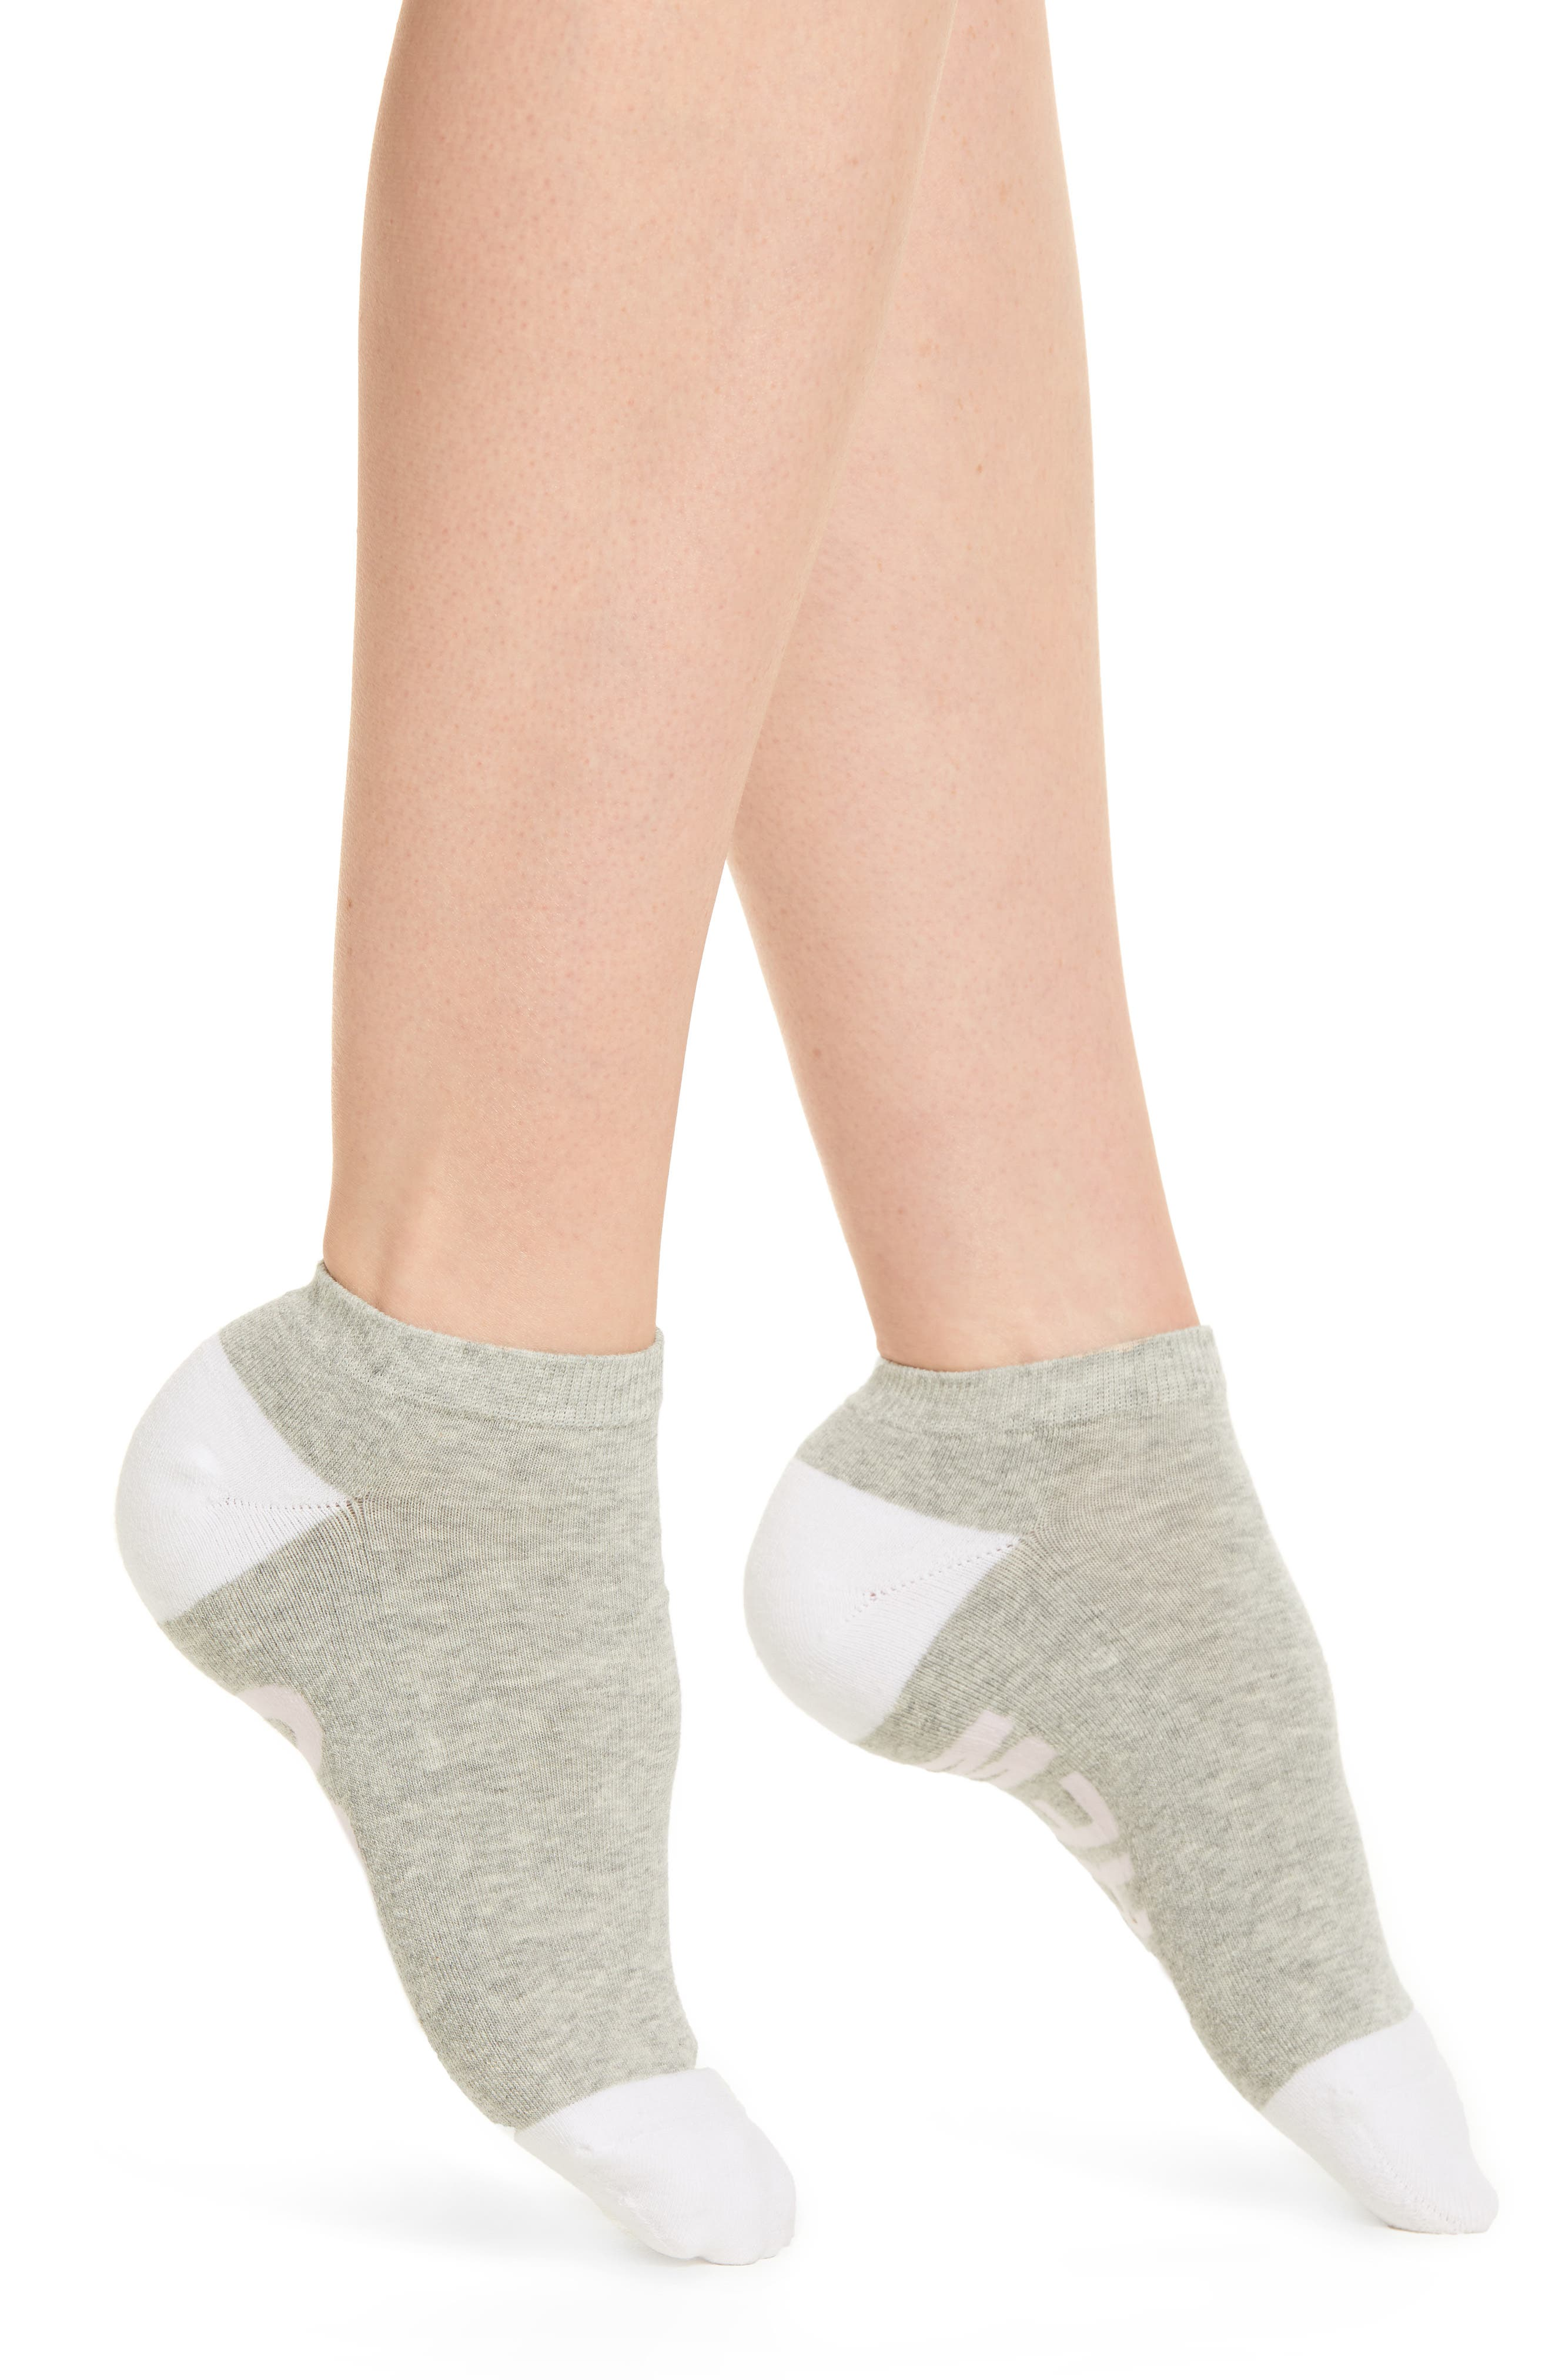 I Do Crew Low-Cut Socks,                             Main thumbnail 1, color,                             060